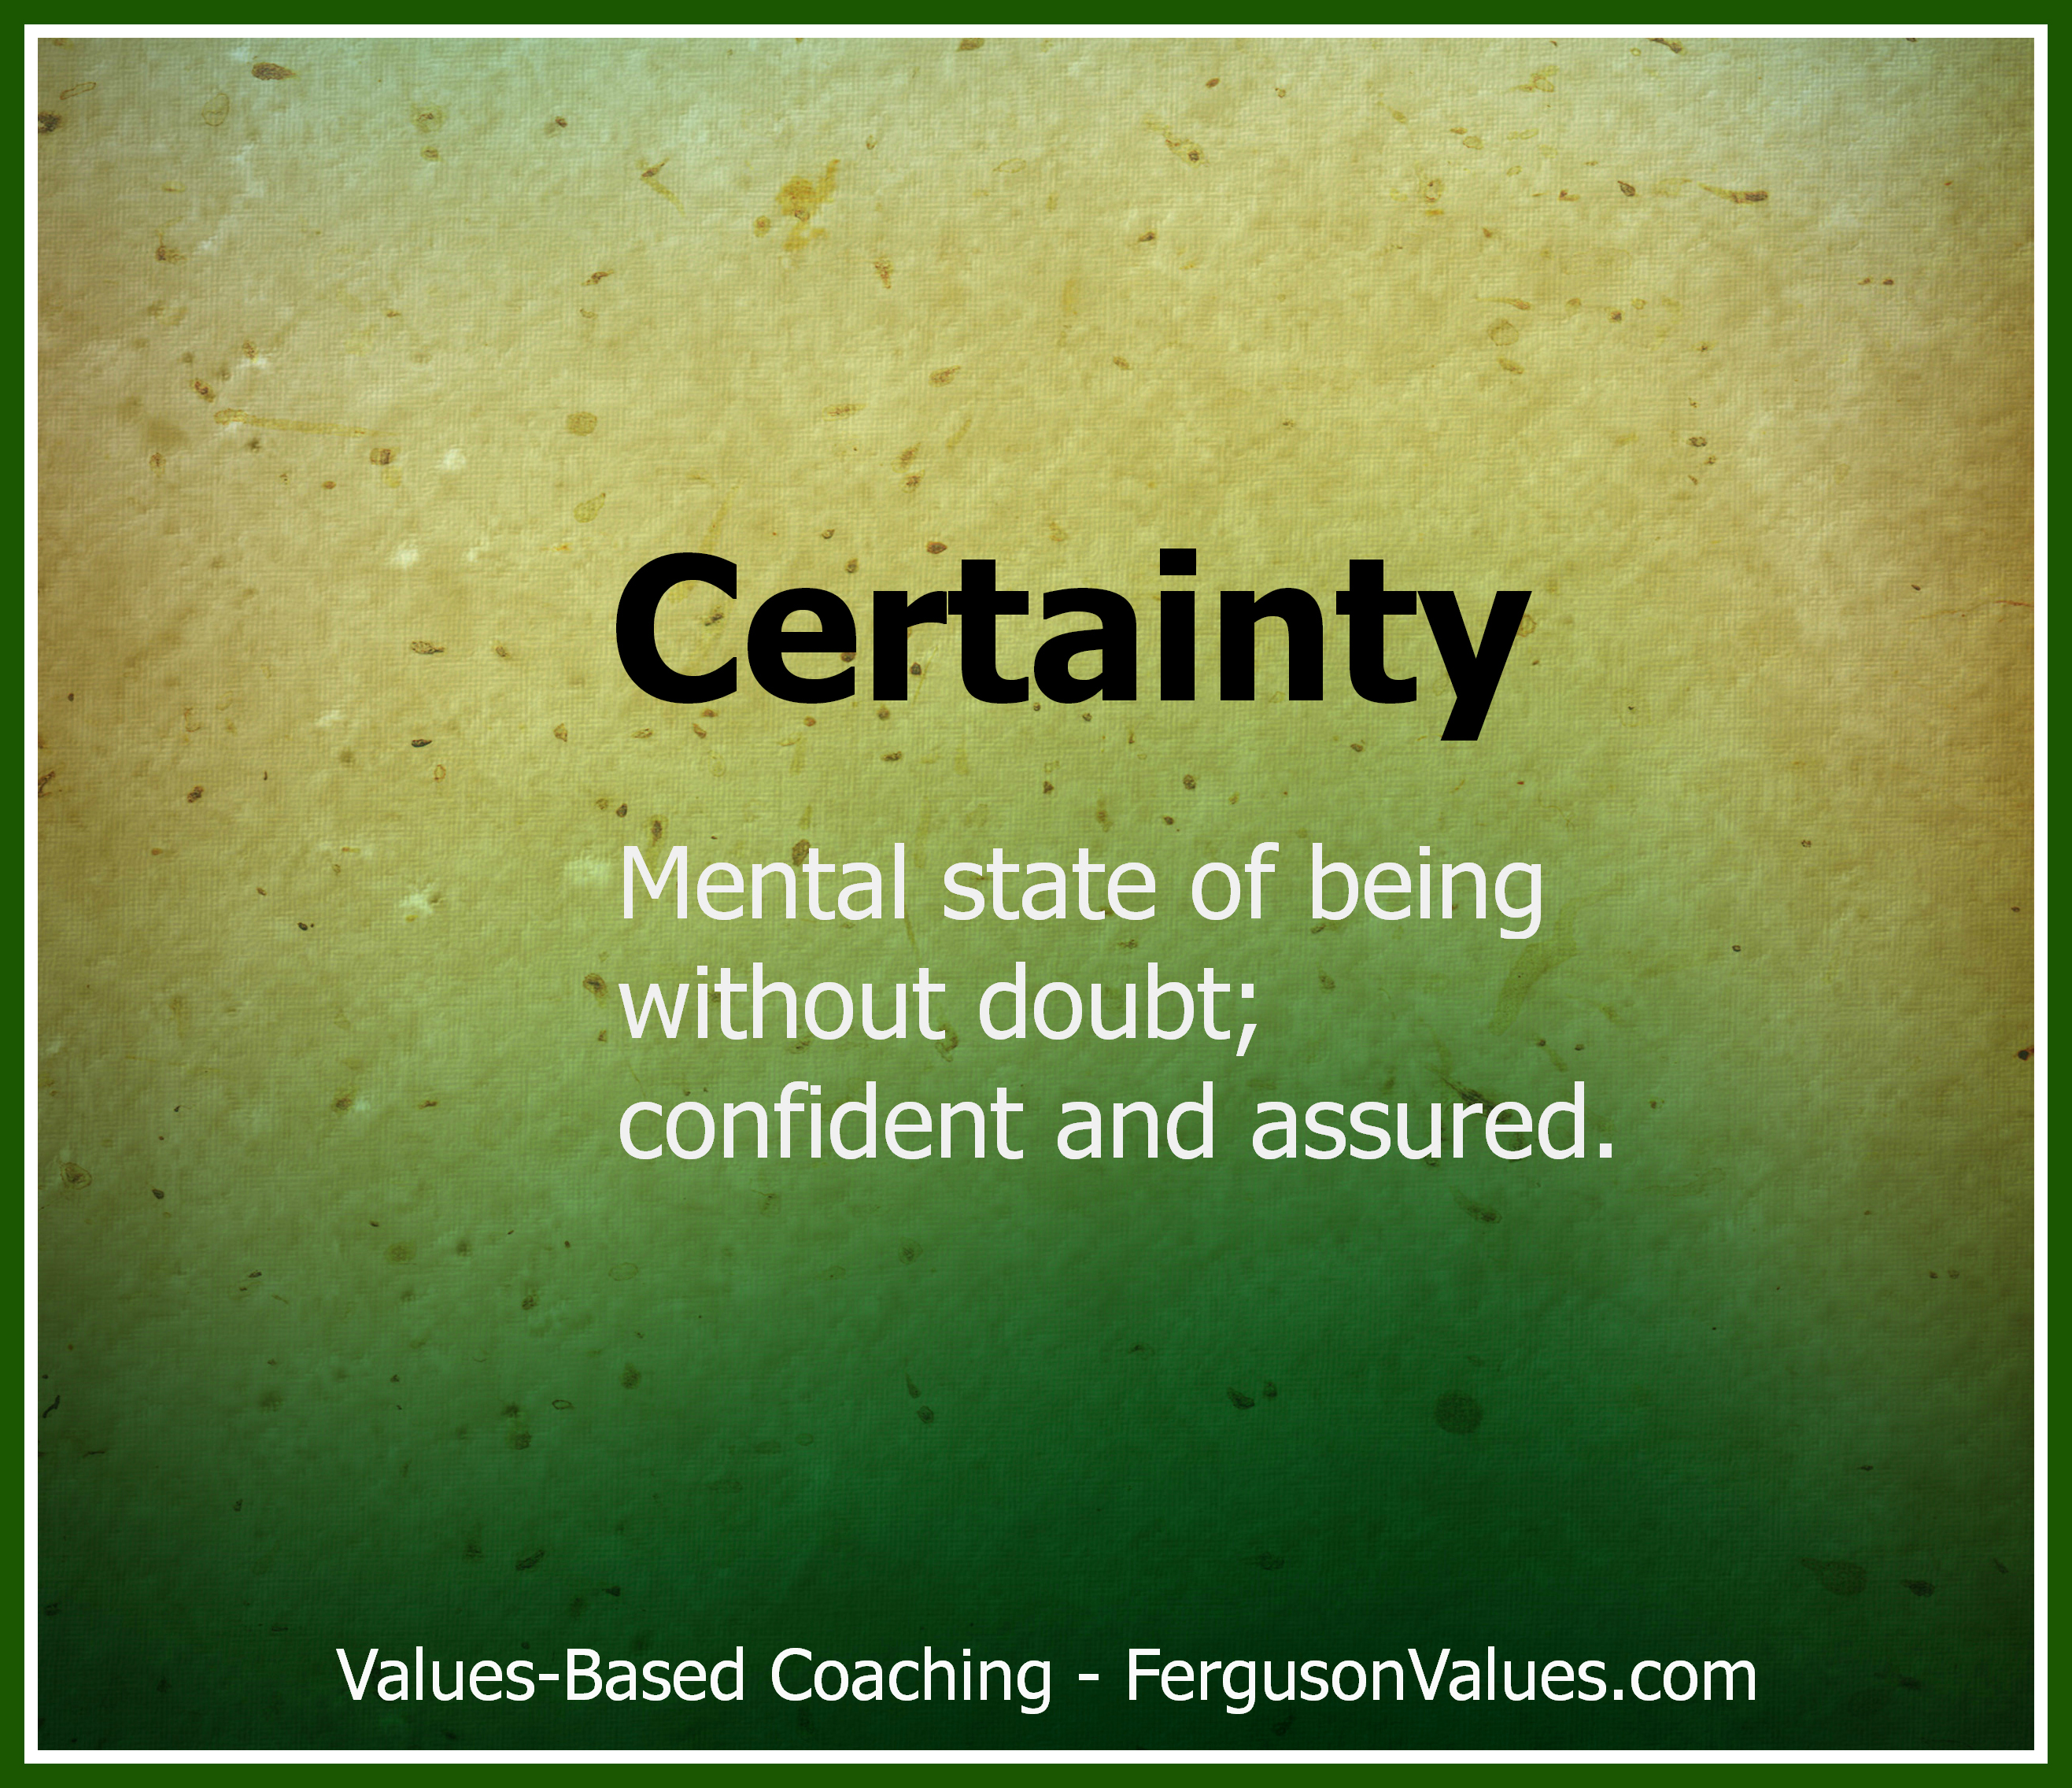 Famous Quotes About 'Certainty'